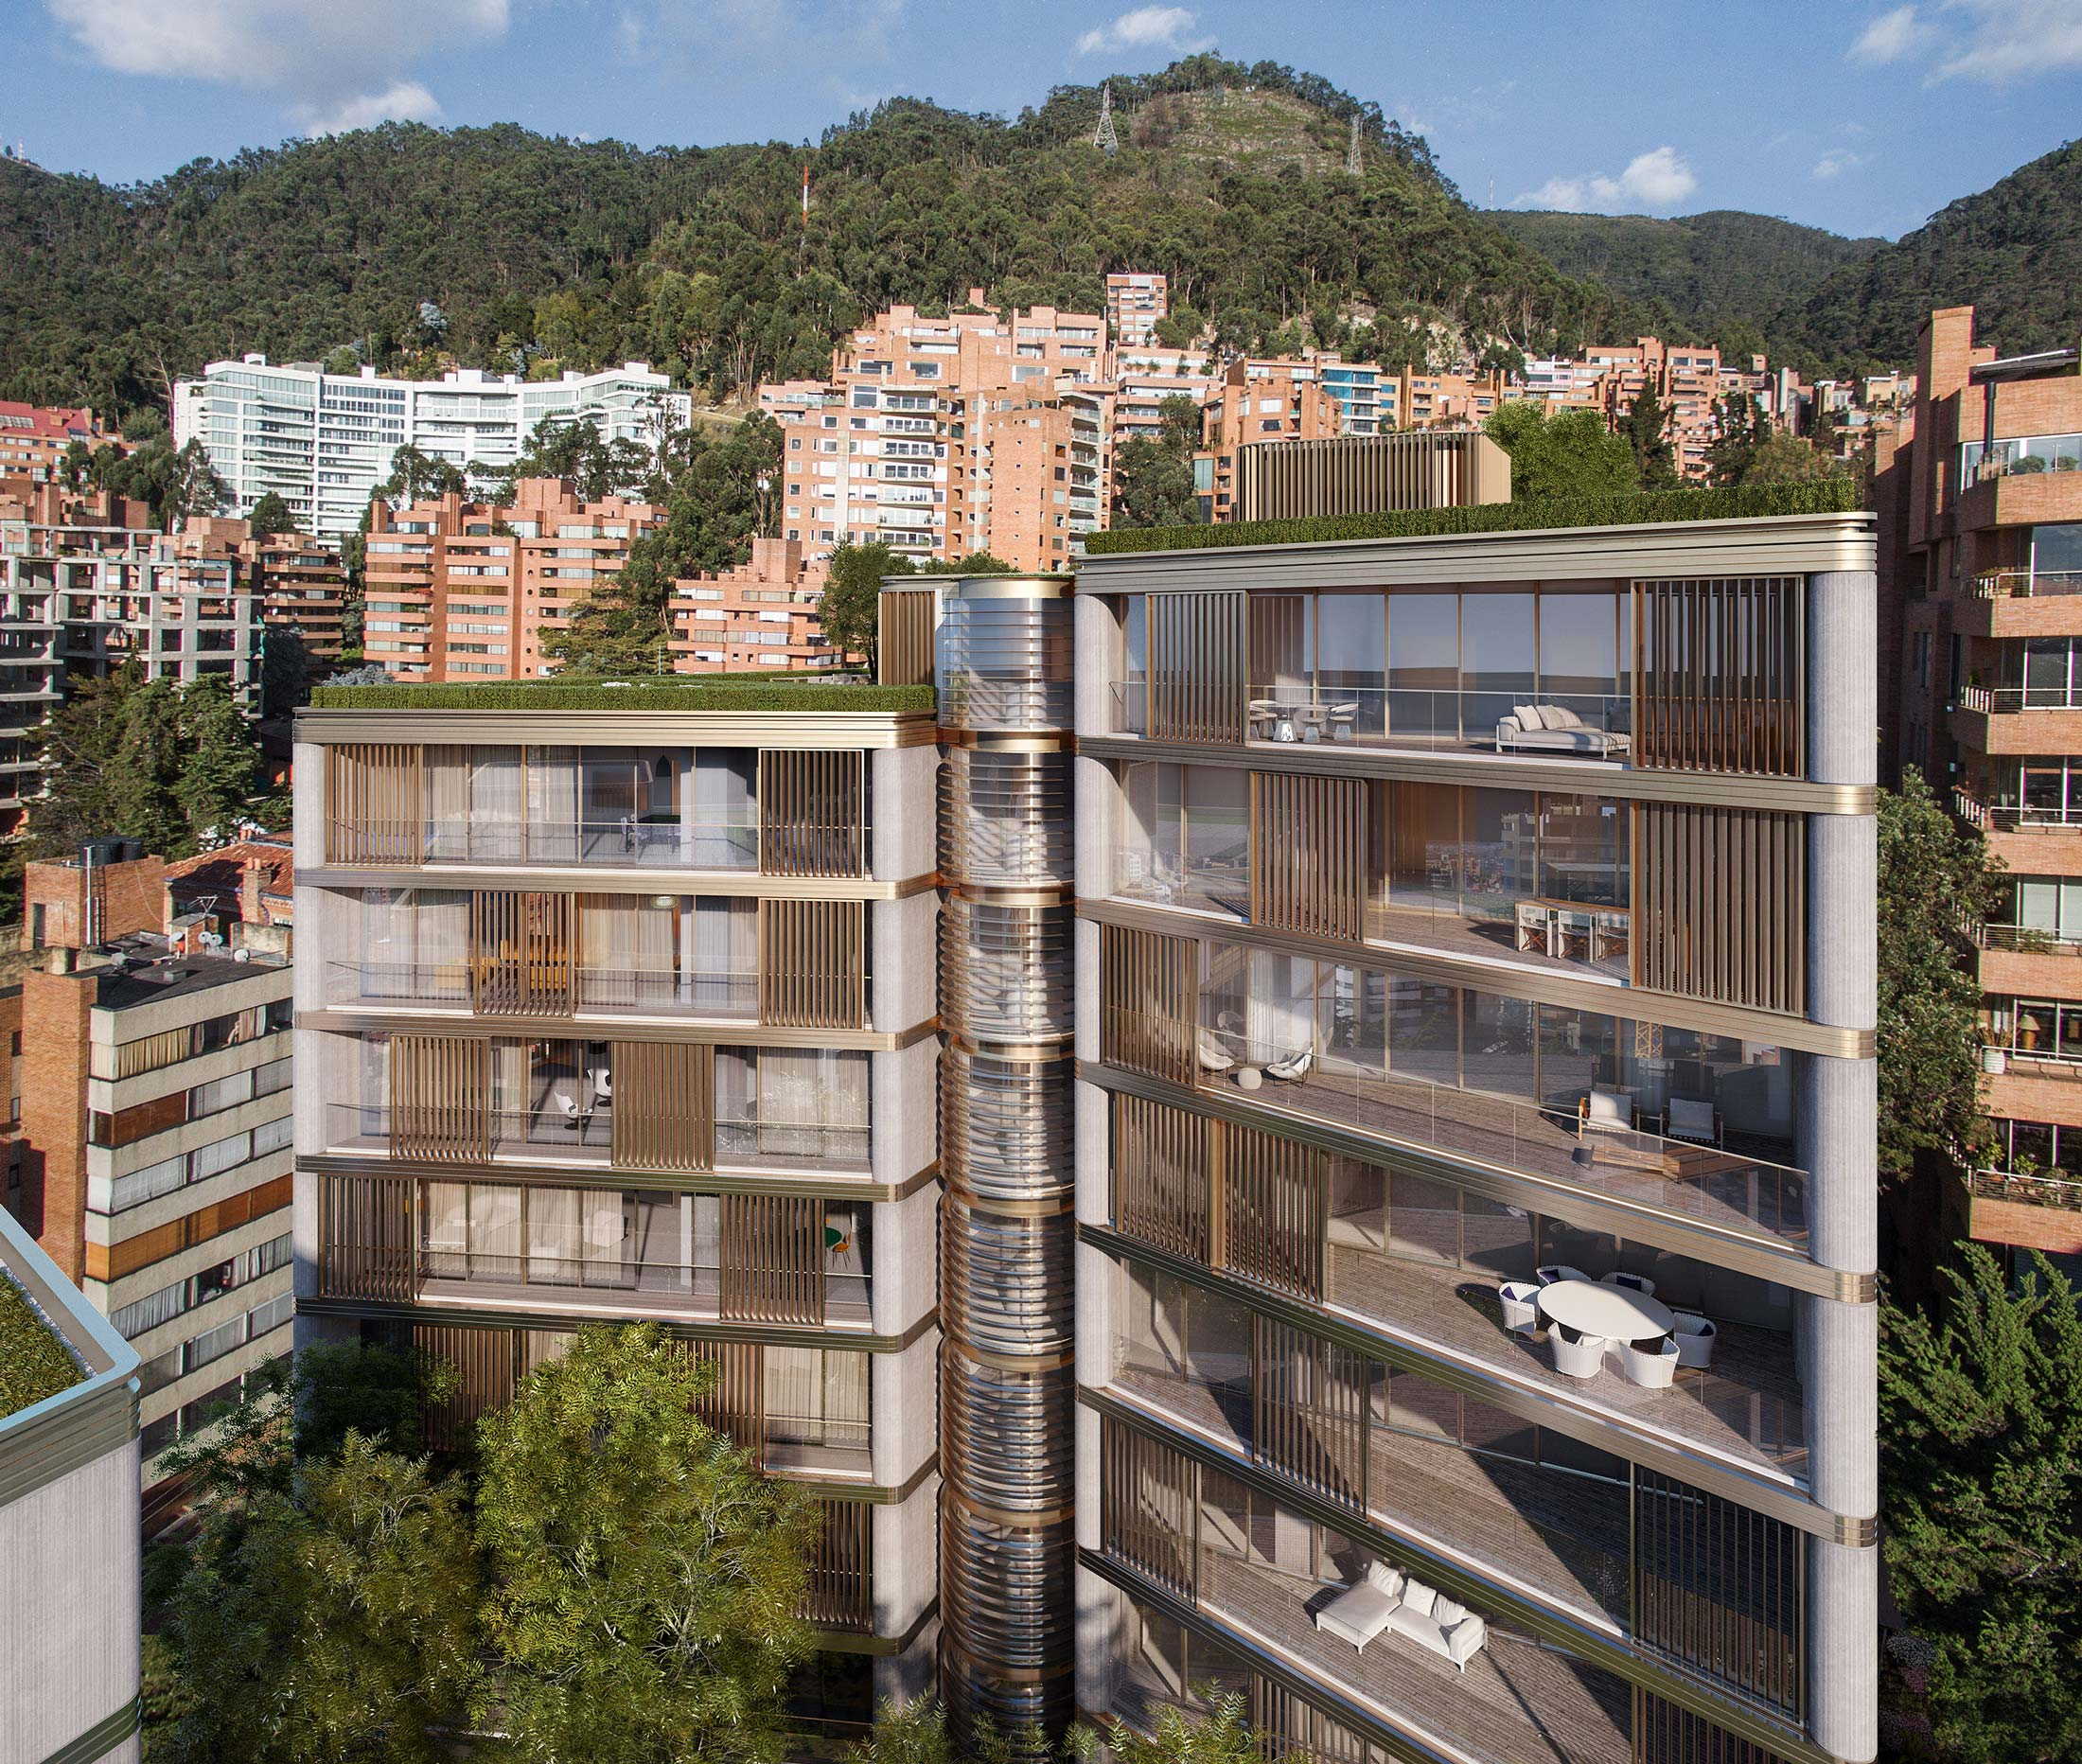 Architectural Rendering of the exterior of the Calle 79B project located in Bogotá, Colombia